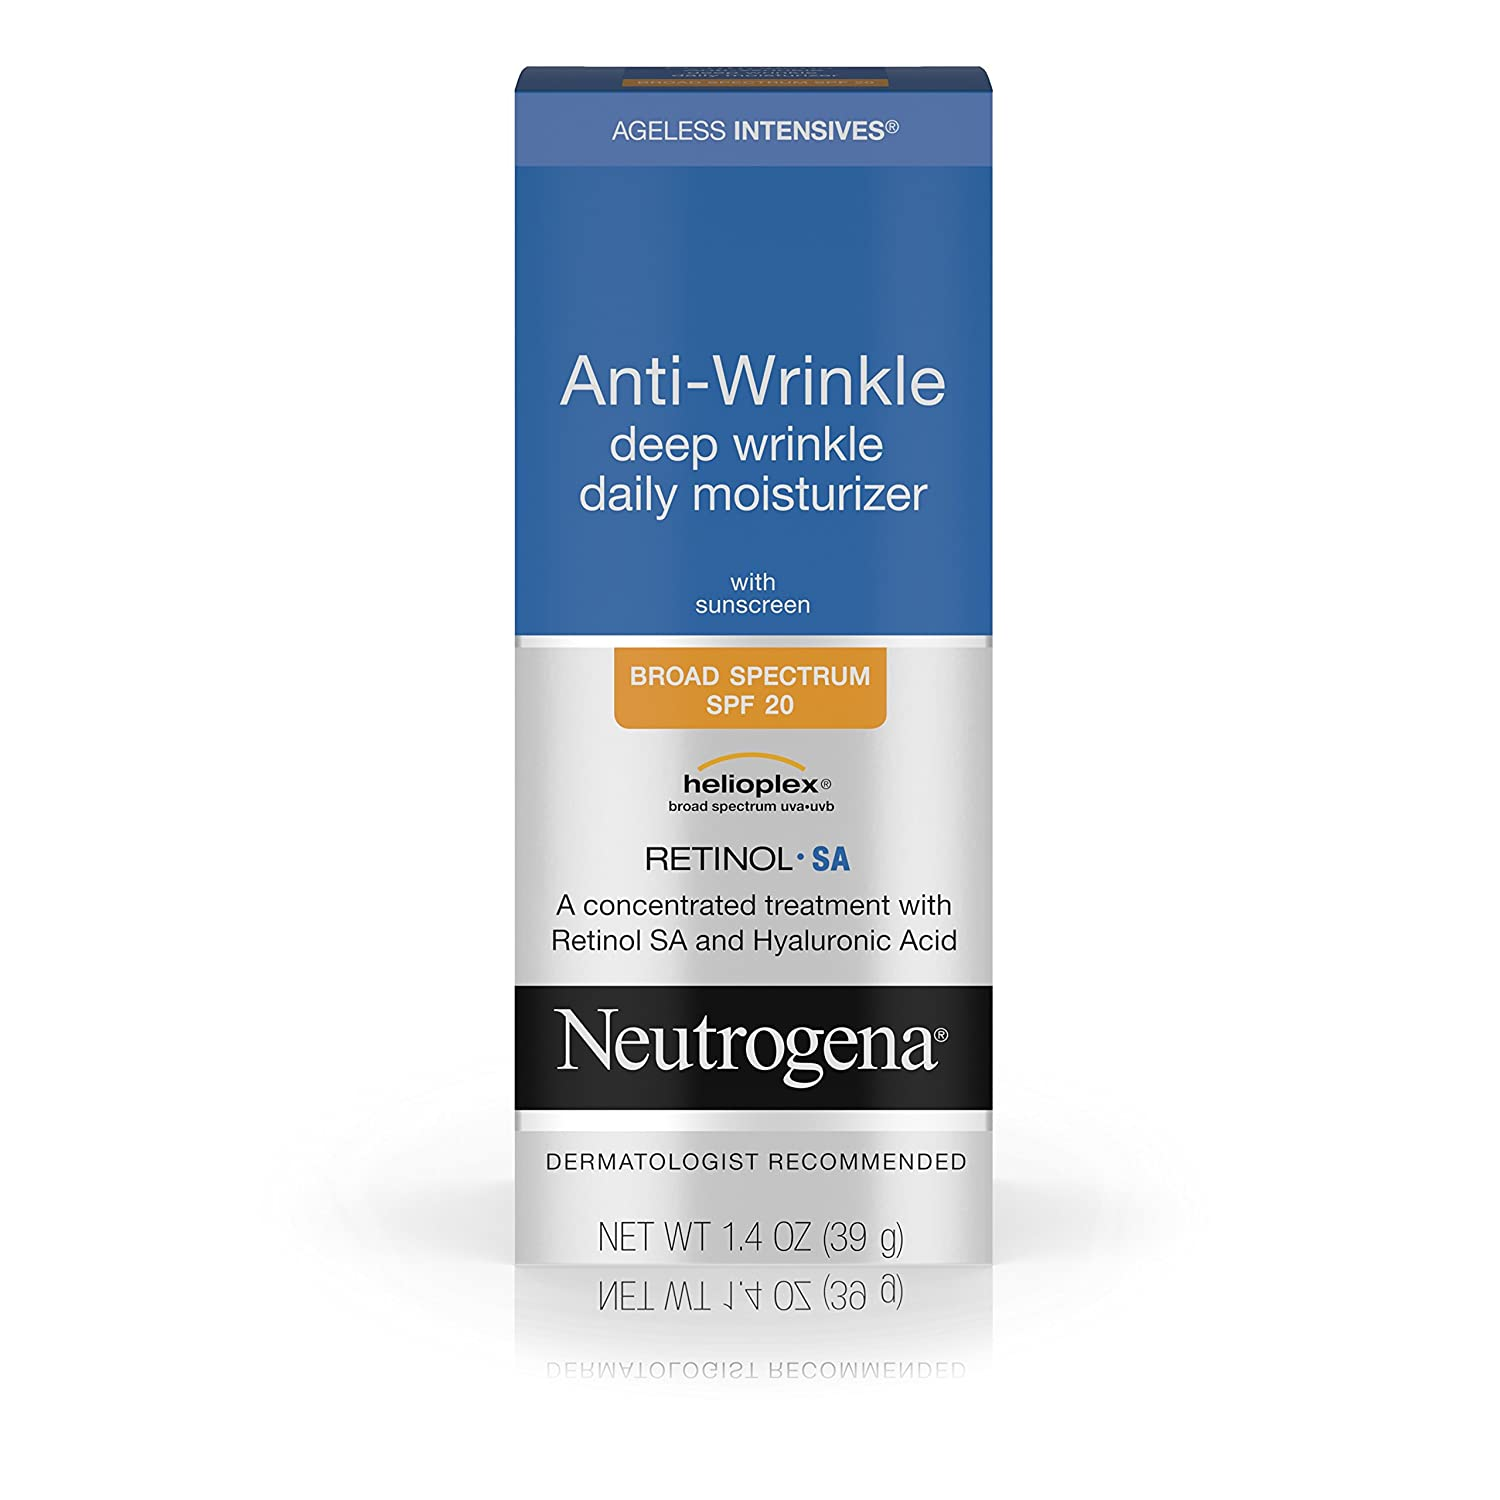 Neutrogena Ageless Intensives Anti-Wrinkle Night Moisturizer, 1.4 oz Lancome Absolue Precious Essence Sublime Regenerating Oleo-Serum 30ml/1oz